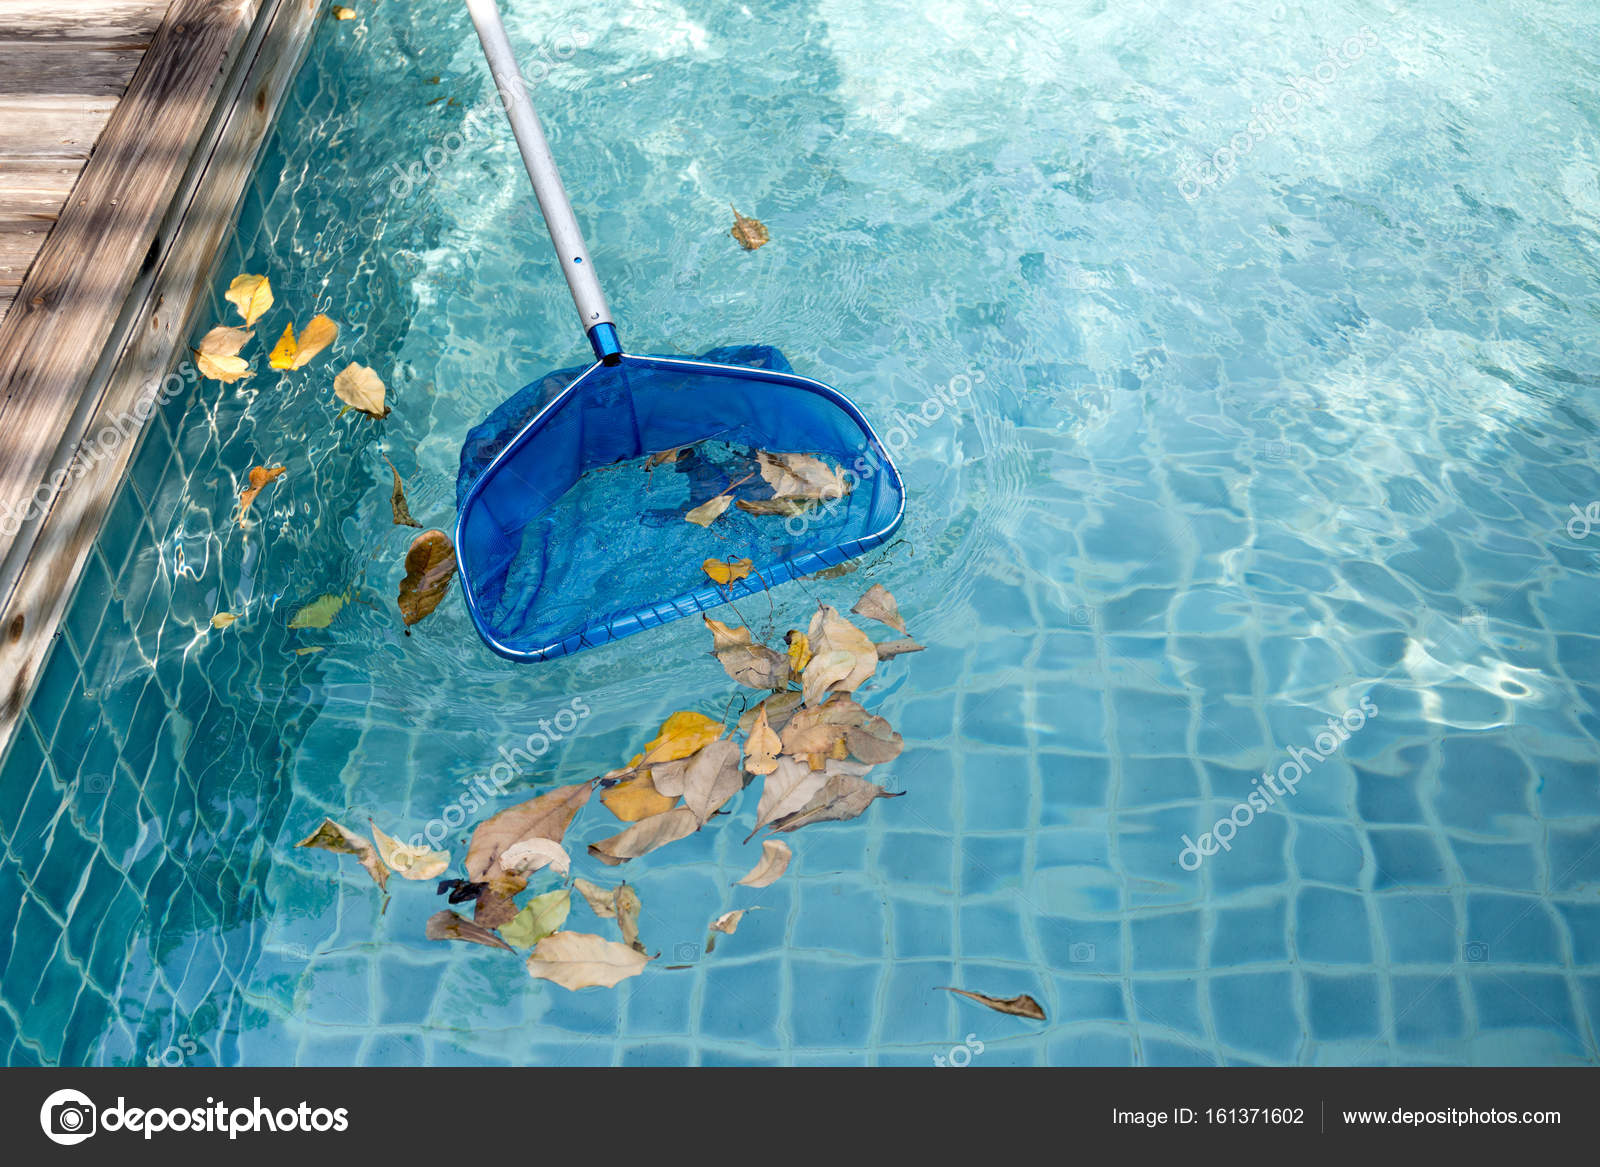 Cleaning swimming pool of fallen leaves with blue skimmer ...